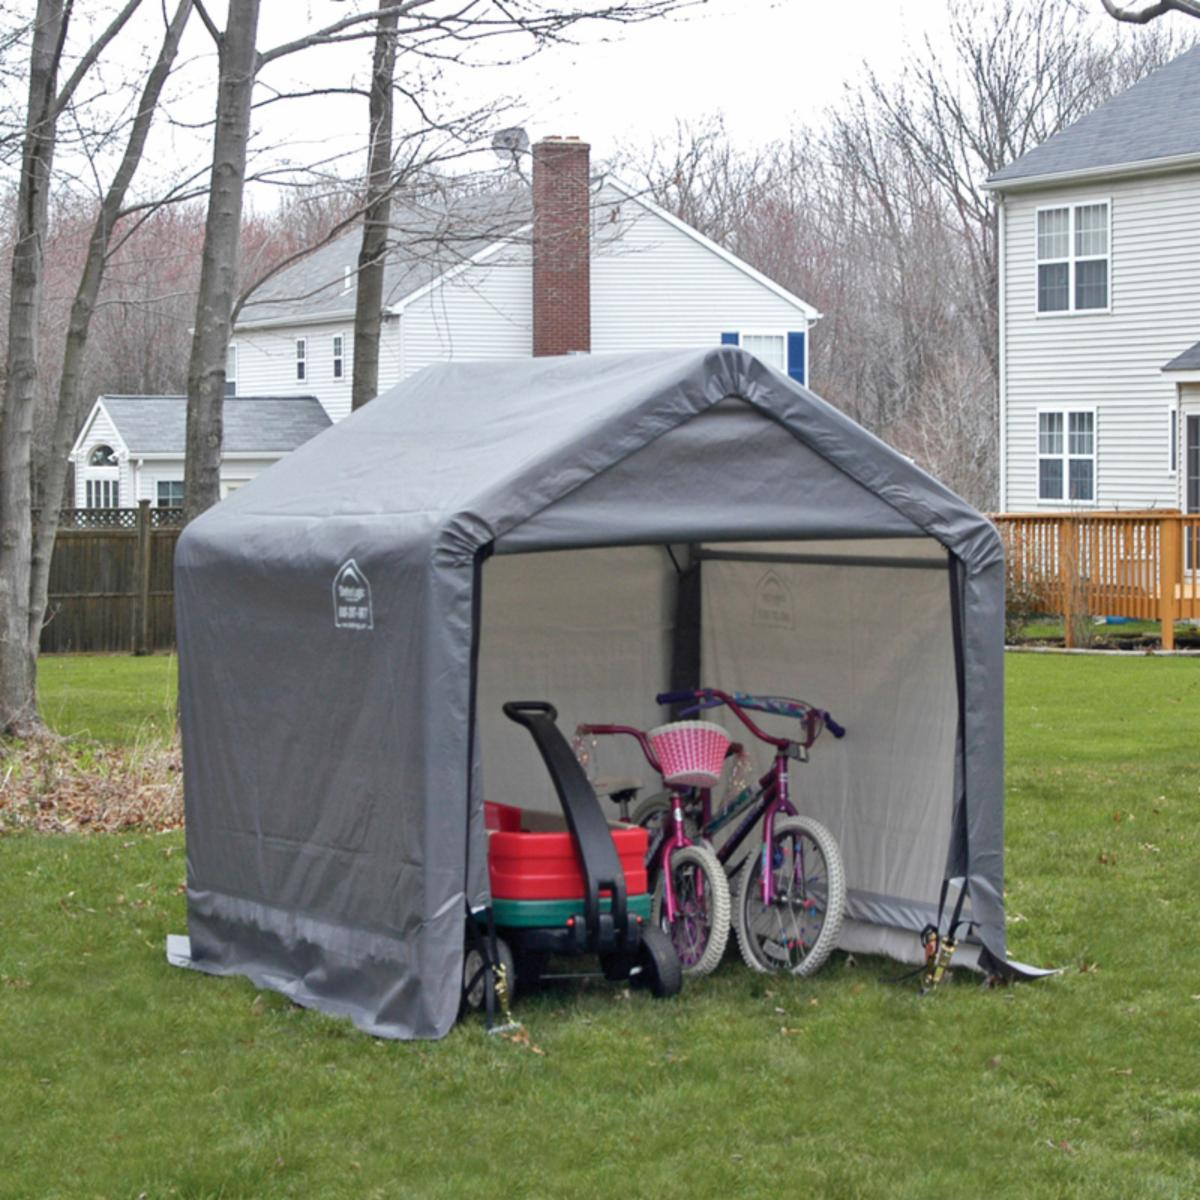 ShelterLogic 6 x 6 ft  Shed in a Box Canopy Storage Shed